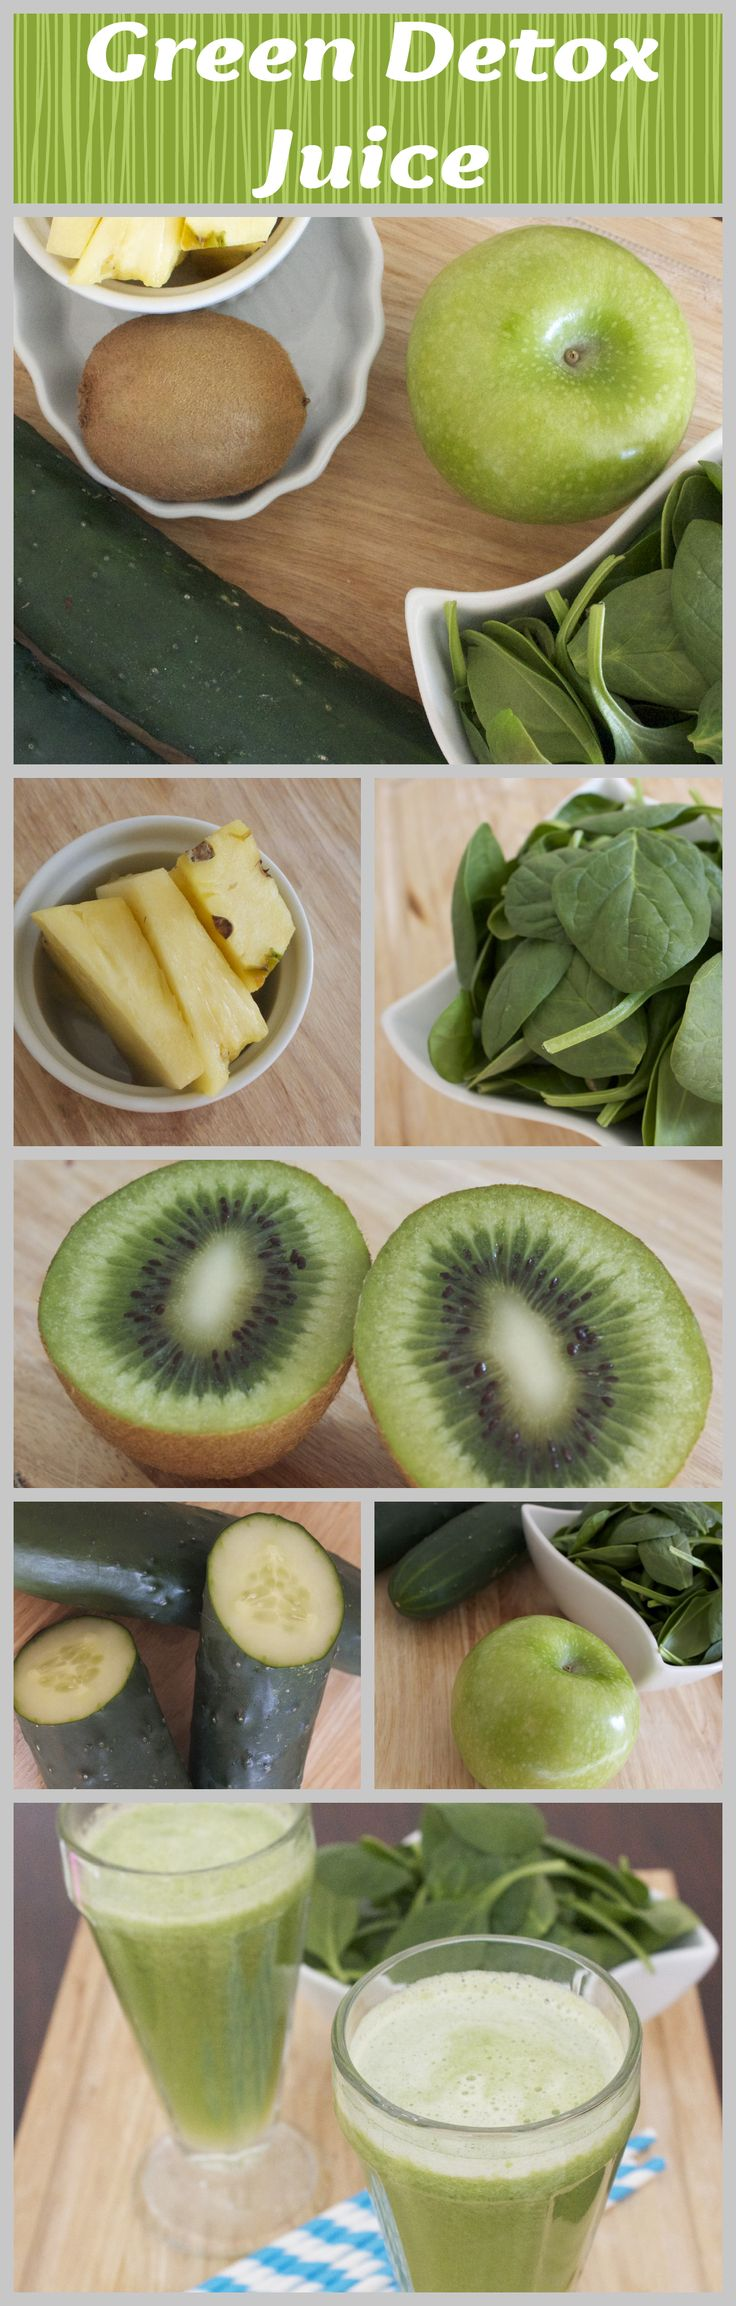 Kiwi recipe  green juice to help detox-apples, cucumbers,kiwi,pineapple and spinach